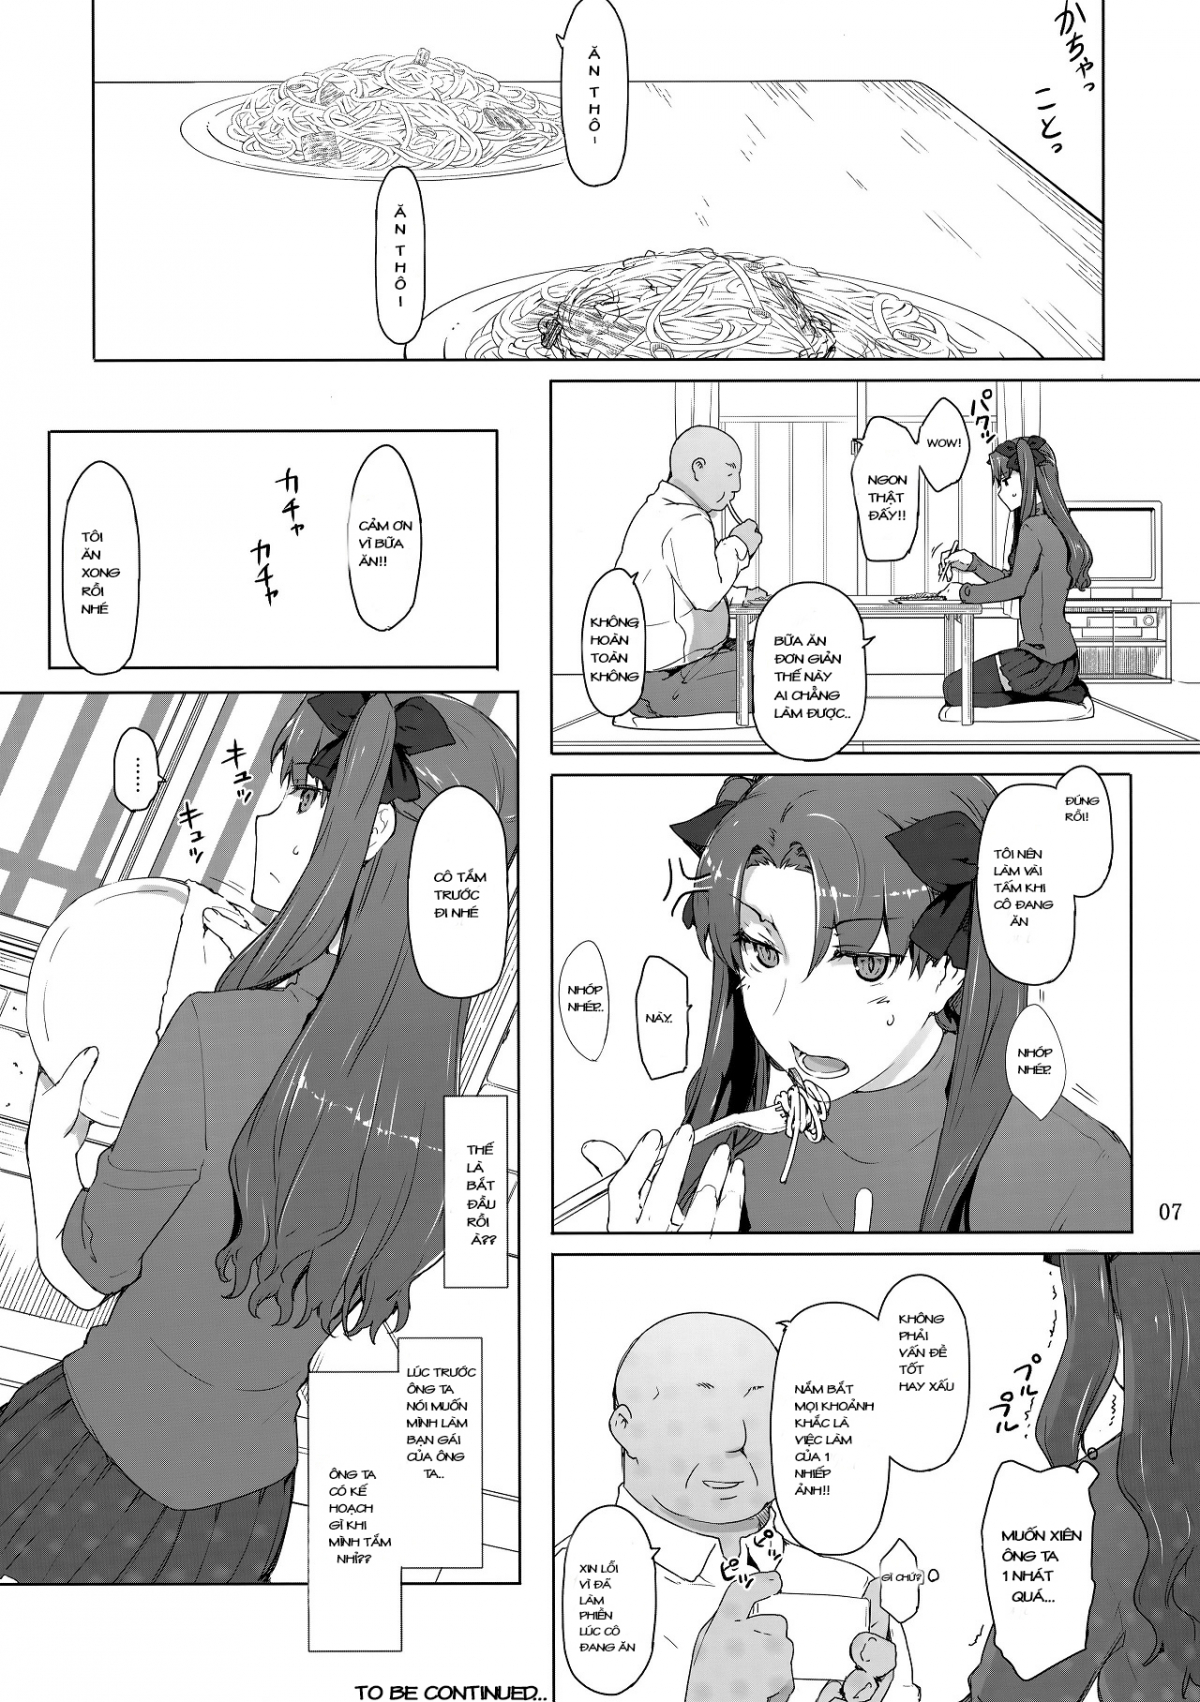 HentaiVN.net - Ảnh 6 - Tohsaka-ke no Kakei Jijou 10 (Fate/stay night) - Chap 1